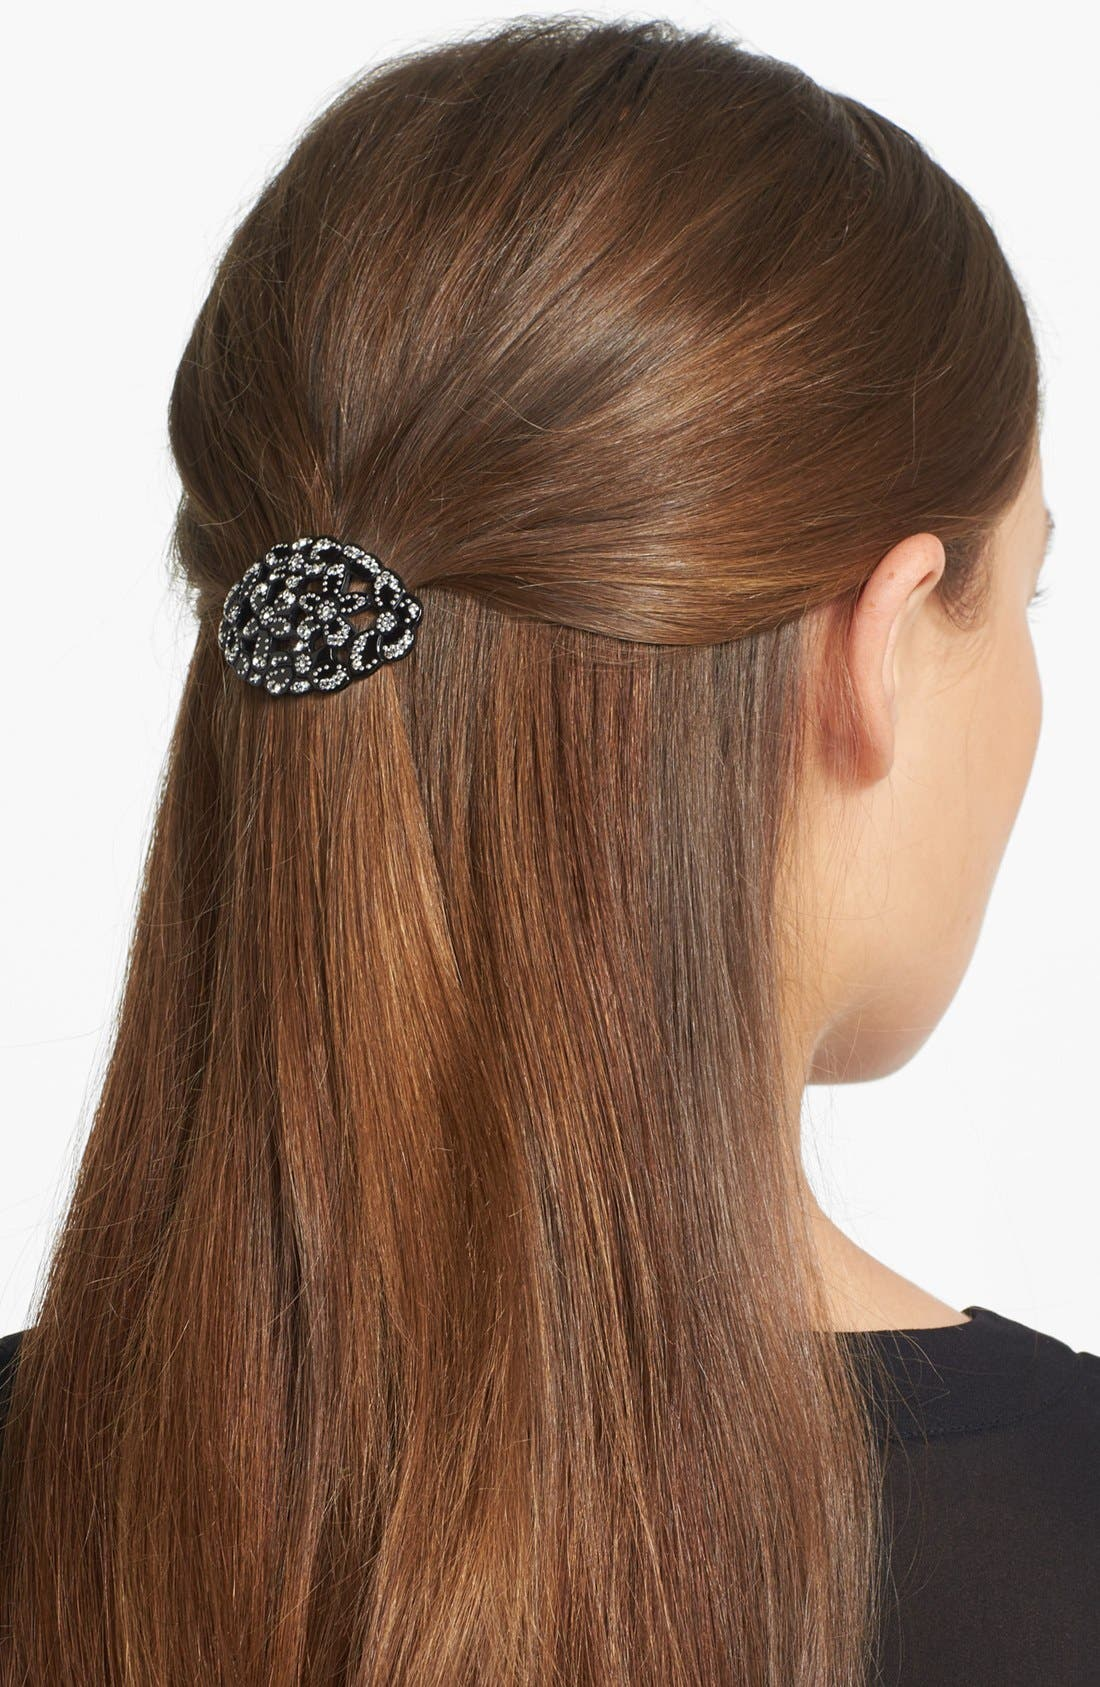 Main Image - France Luxe 'Crystal Floral Oasis' Hair Clip